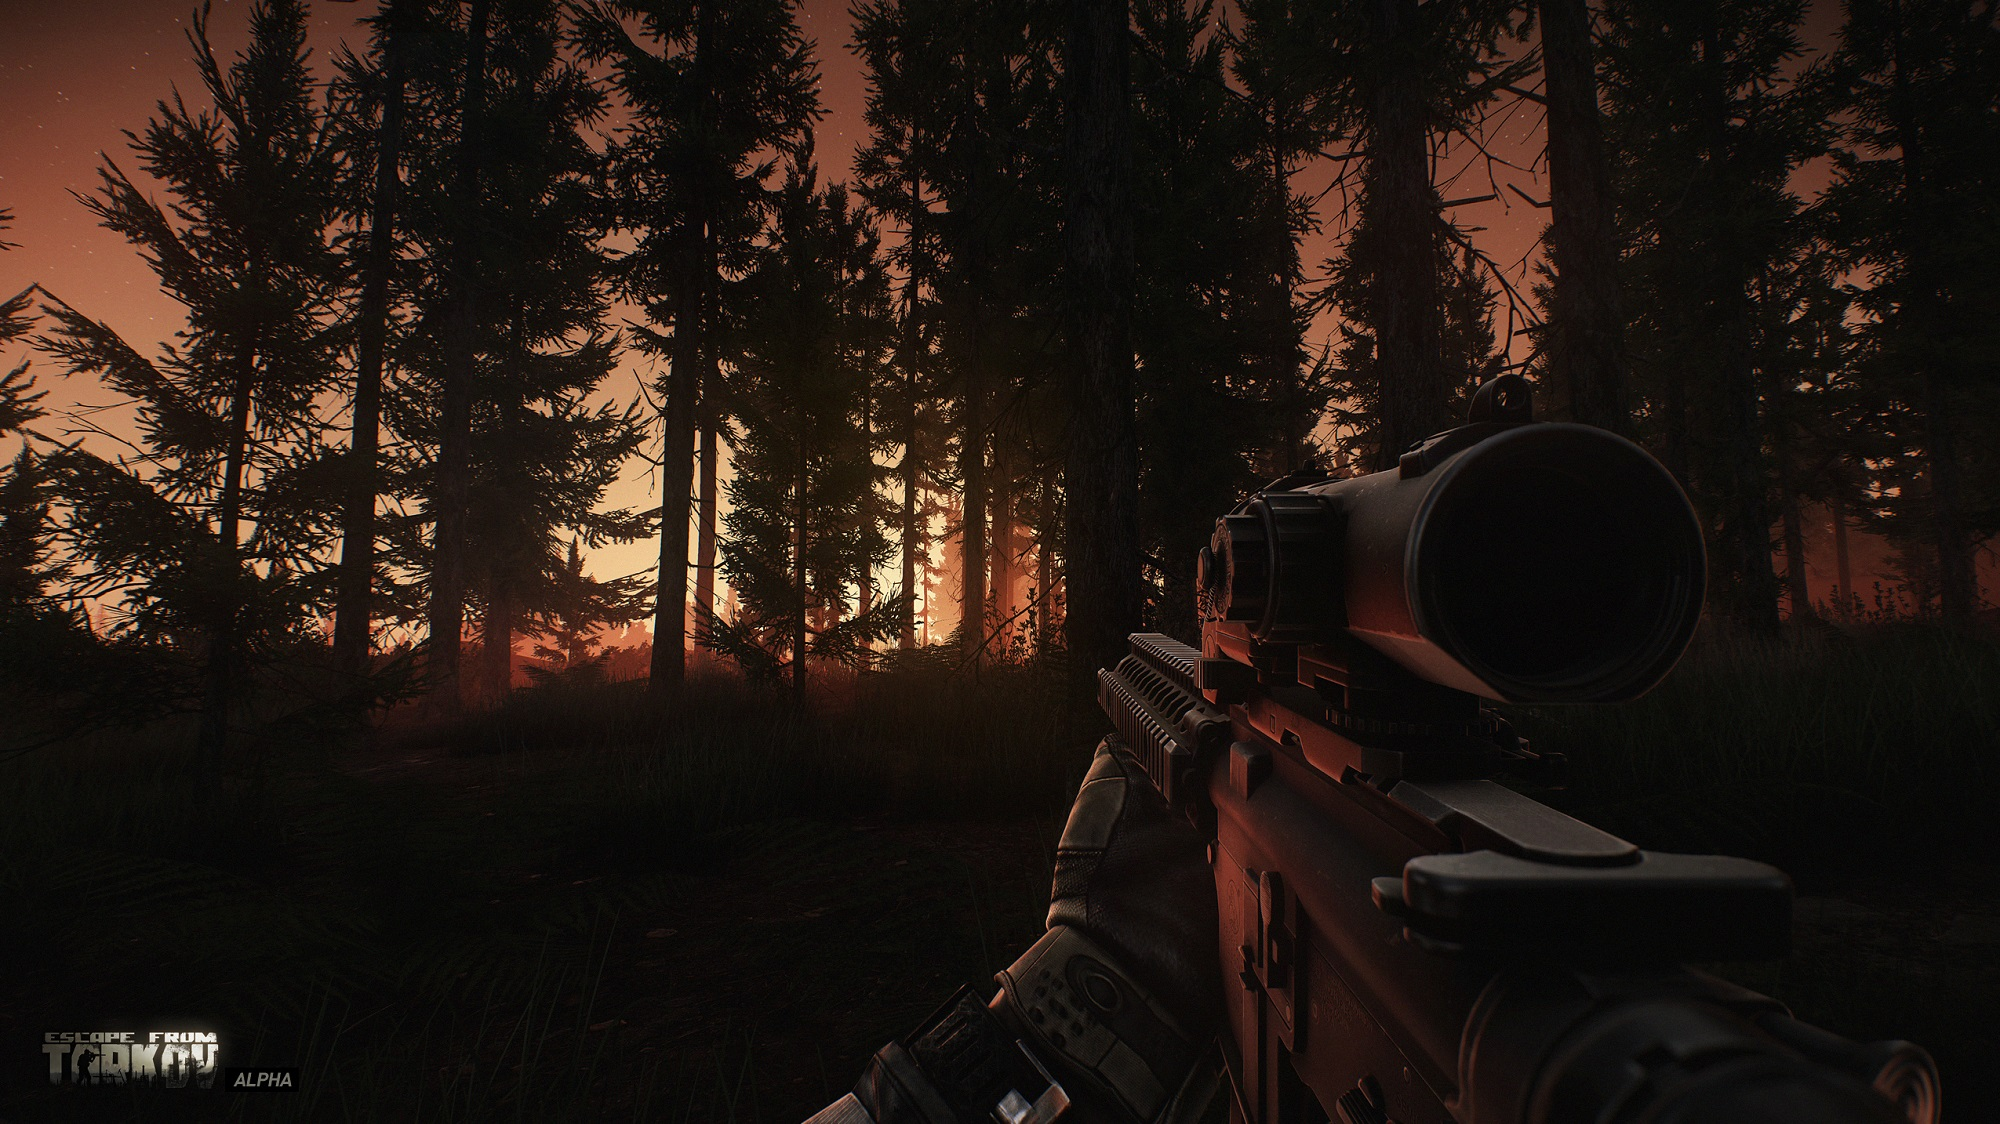 Escape from Tarkov looks like one of the best games ever